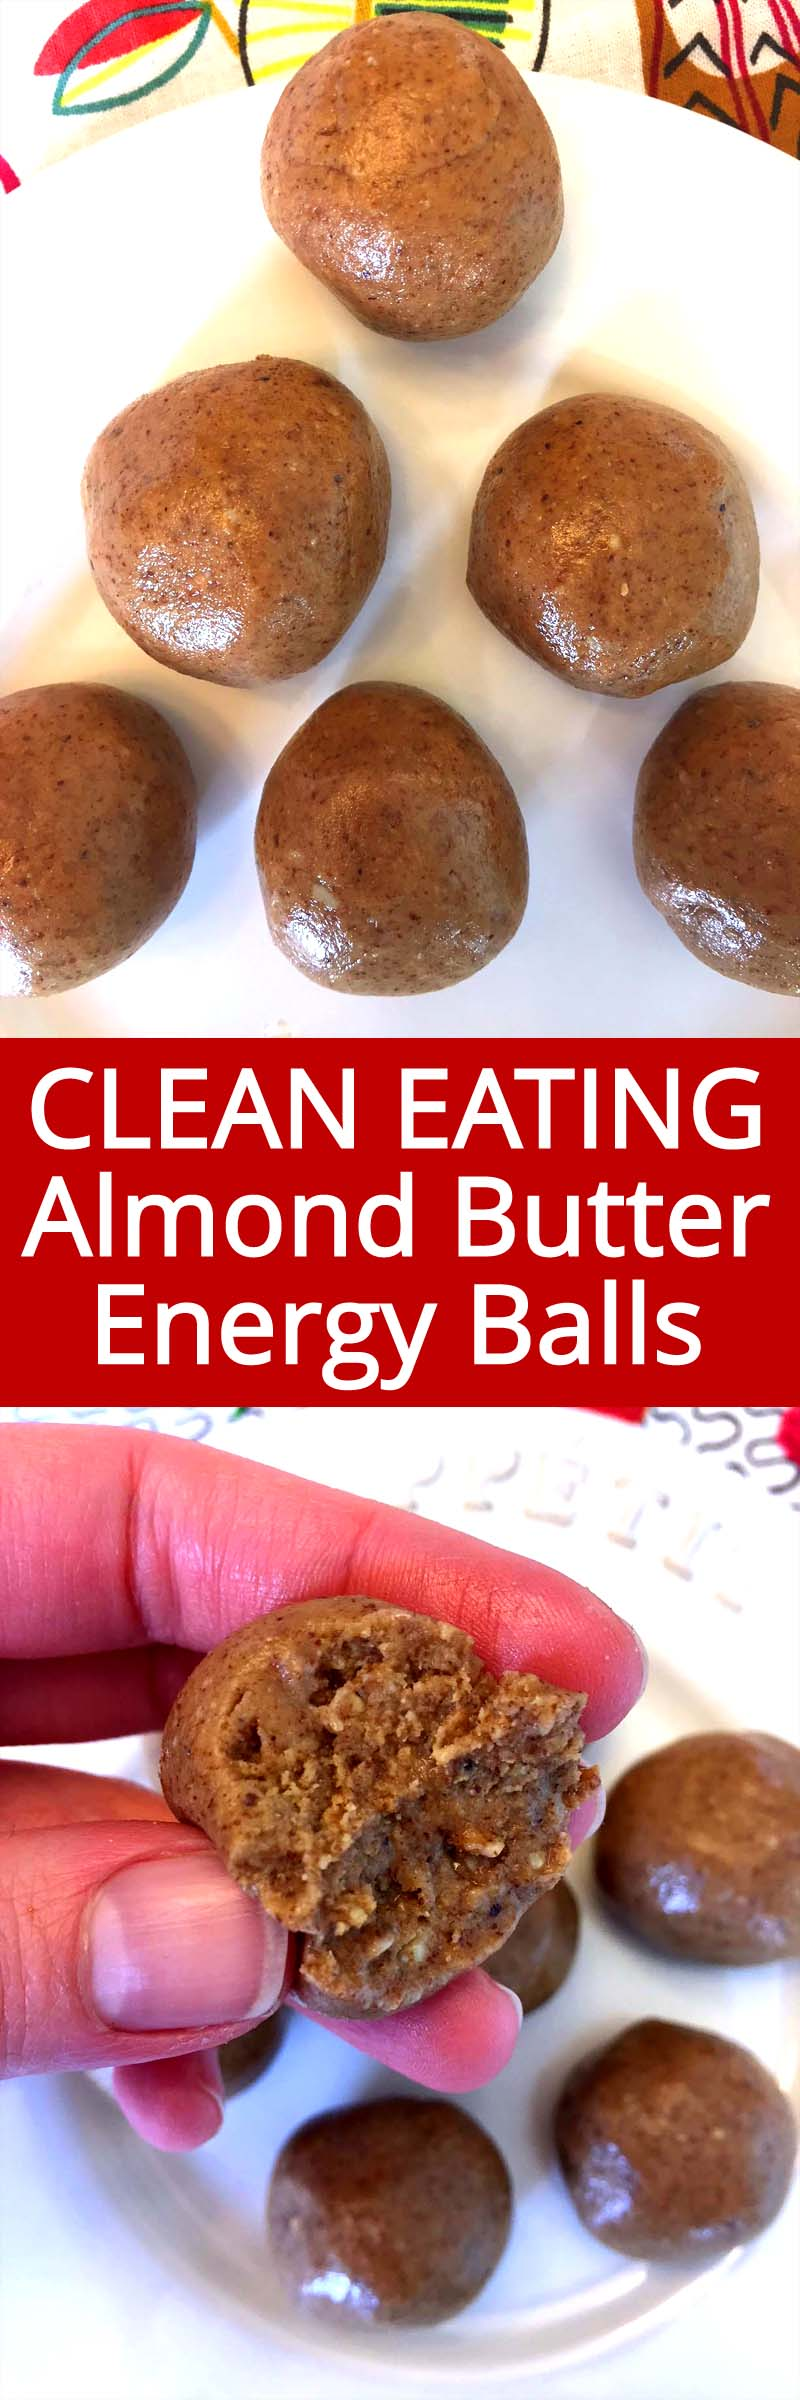 I love these almond butter energy balls! So full of protein, they keep me full for hours! Perfect for a healthy snack on the go!